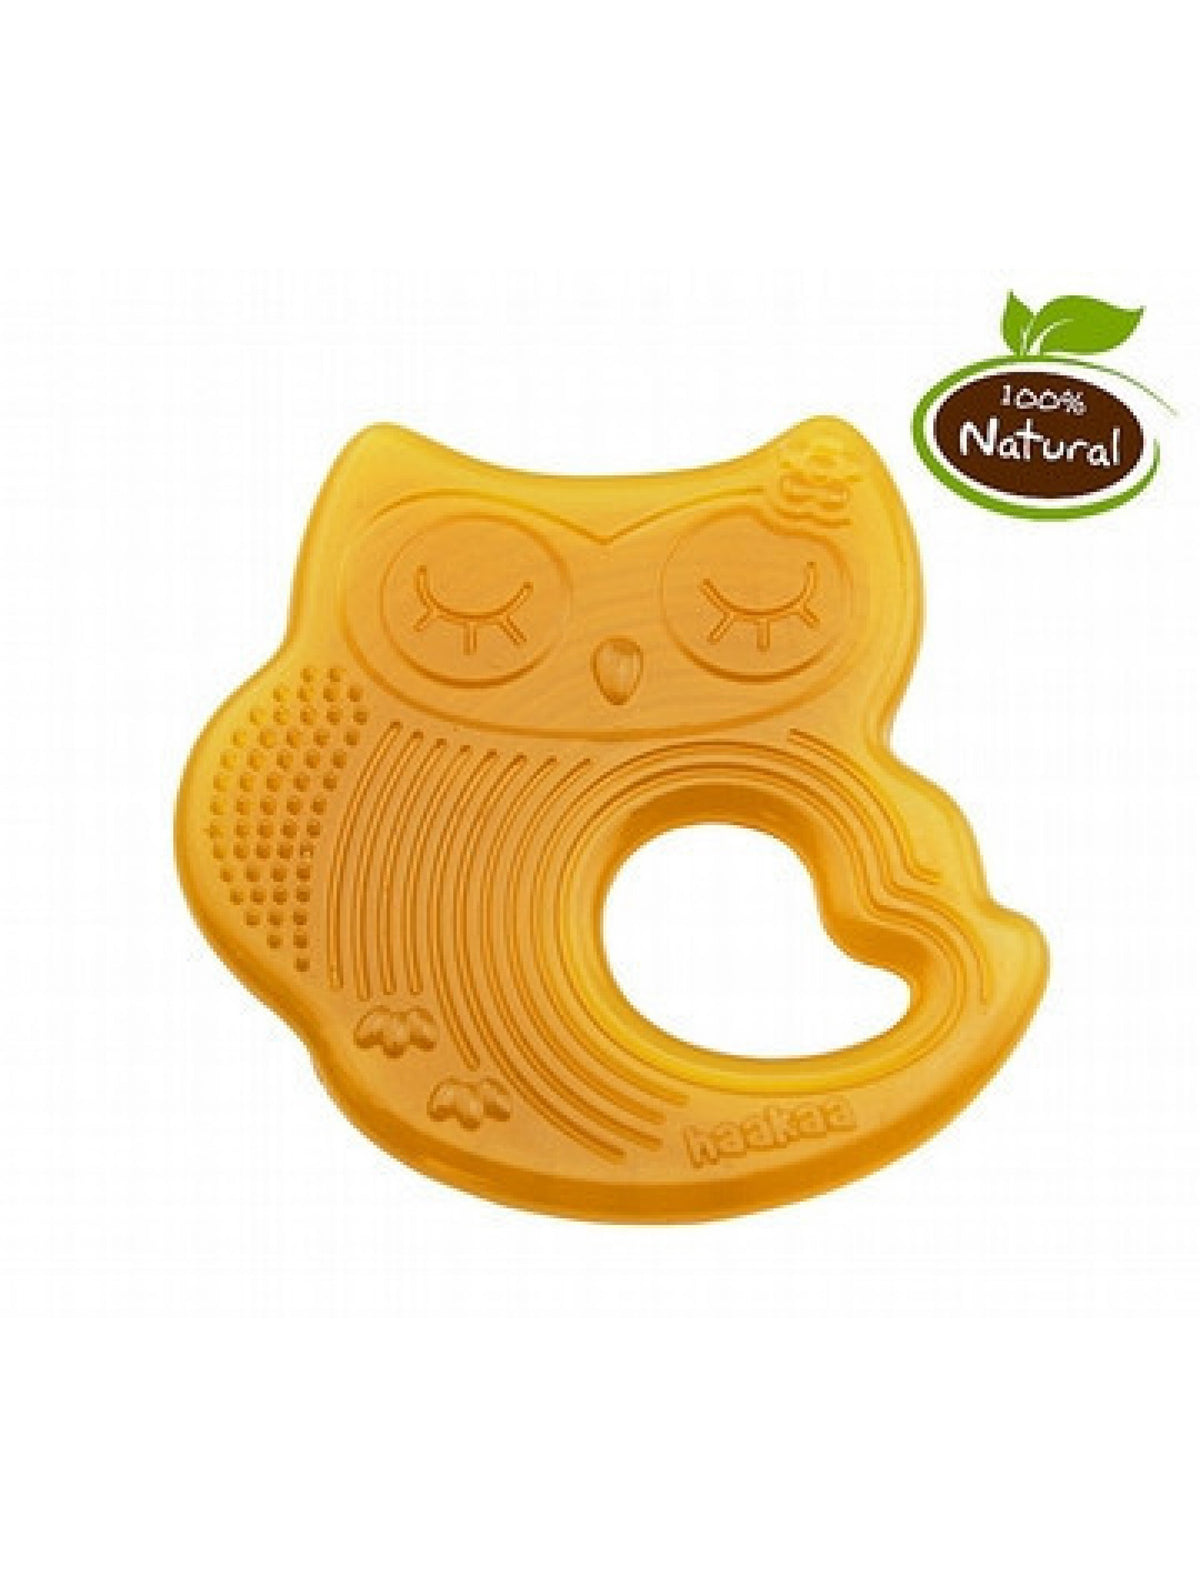 Haakaa Natural Rubber Teether - Owl Sleeping